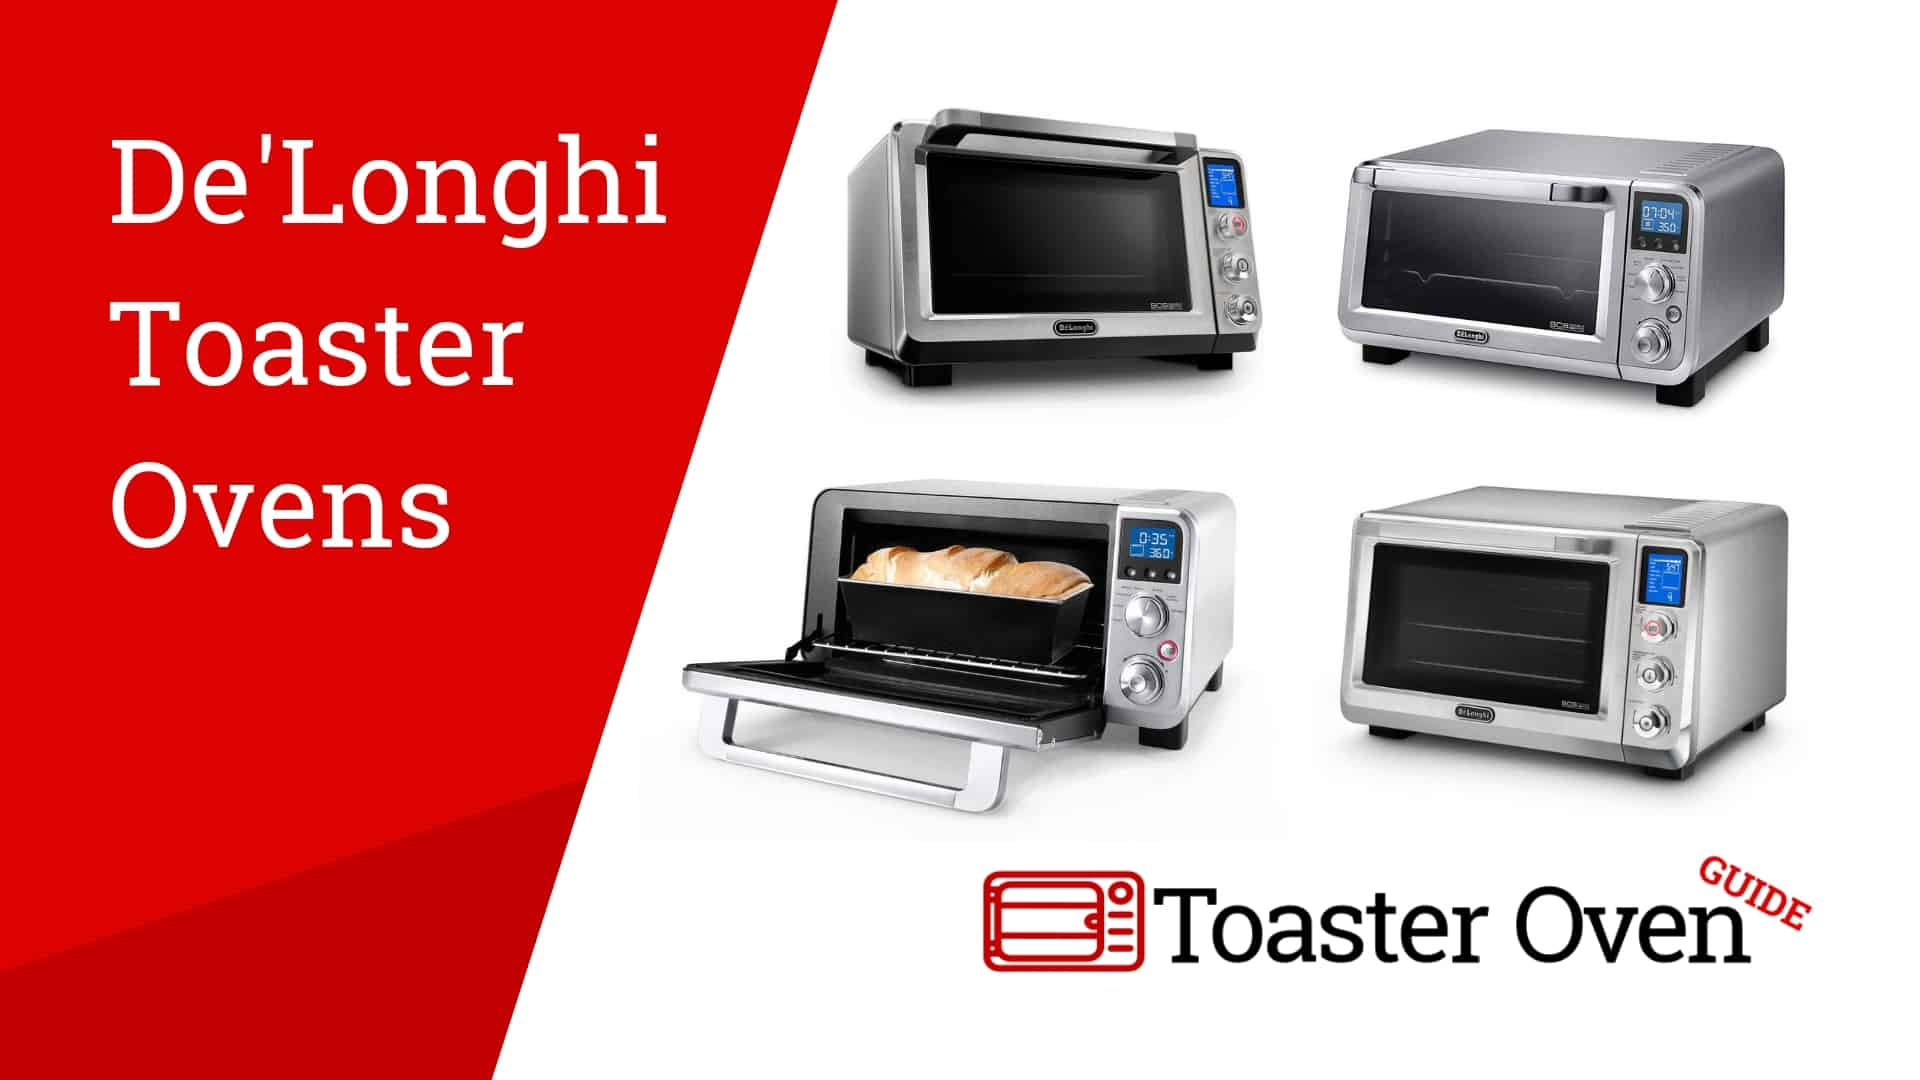 Ovensi Videos Porno de'longhi toaster ovens | toaster oven guide